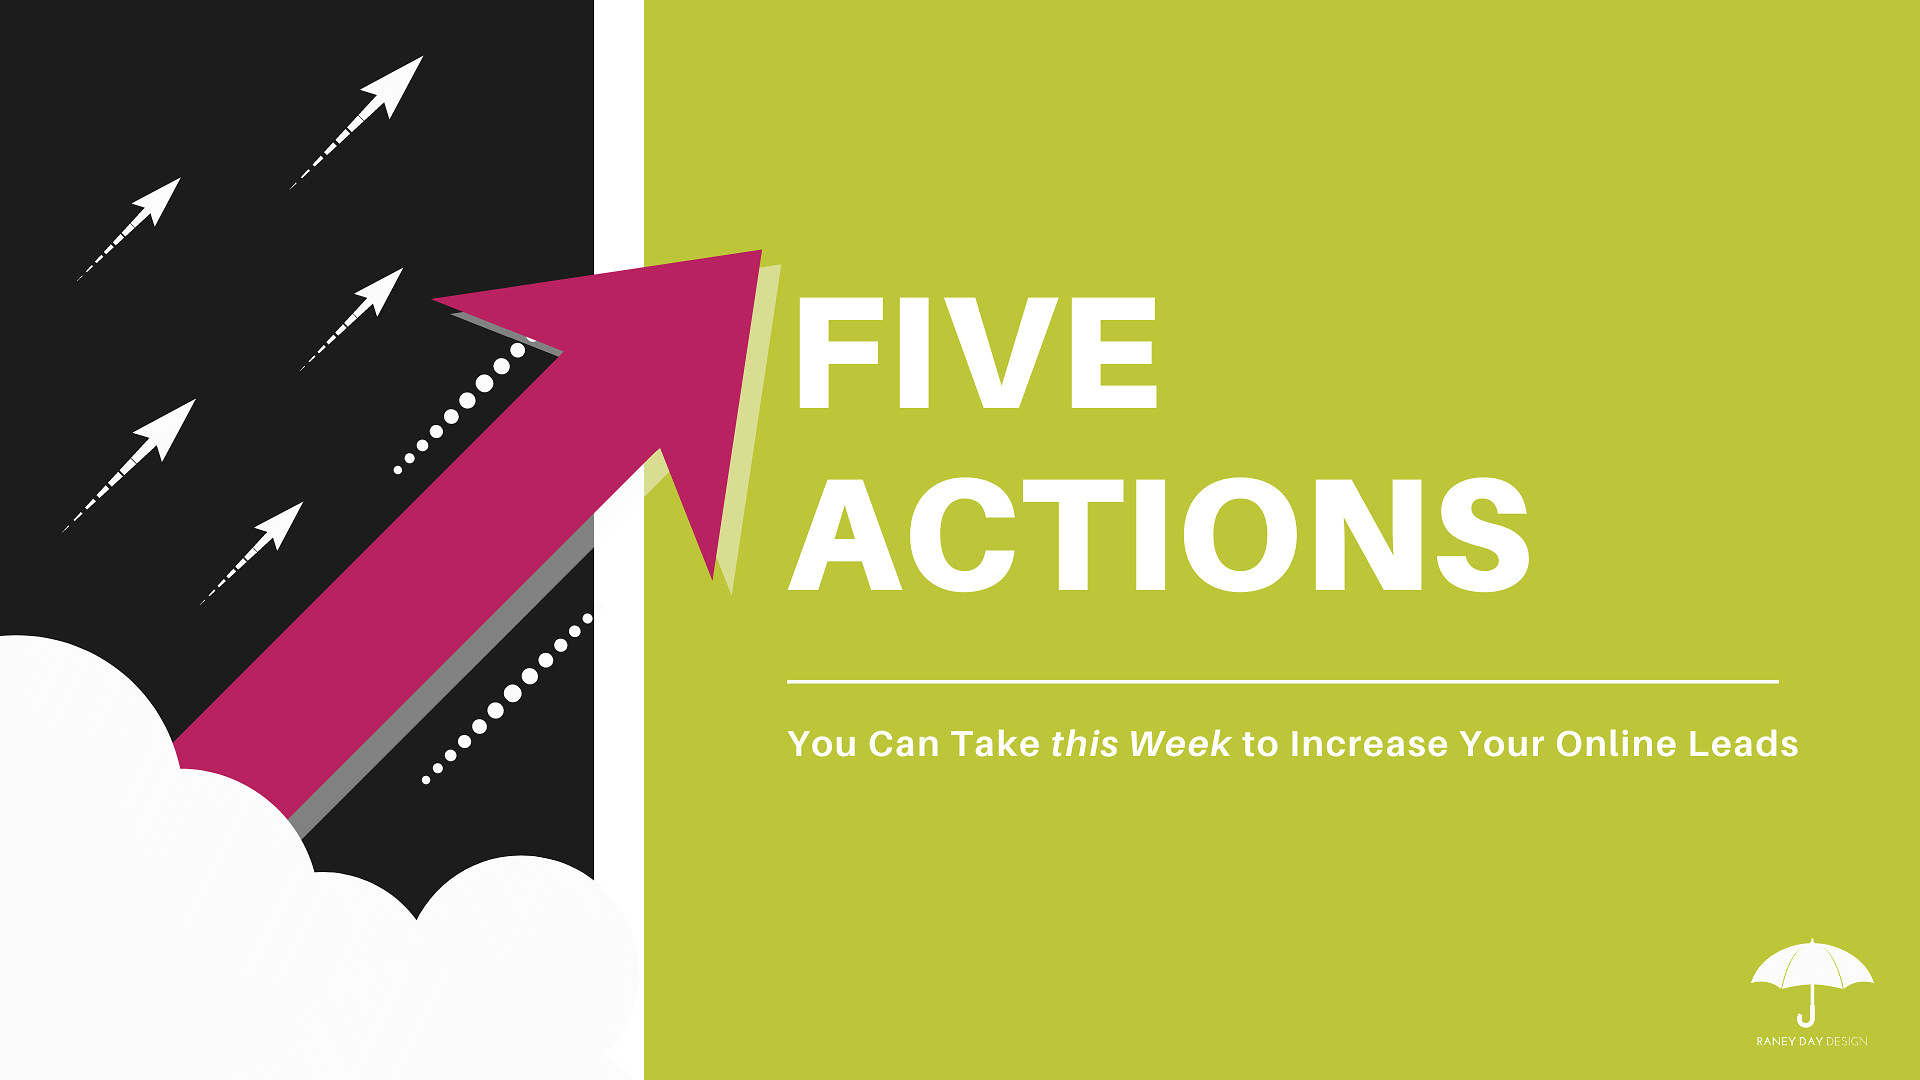 5 Actions You Can Take this Week to Increase Your Online Leads